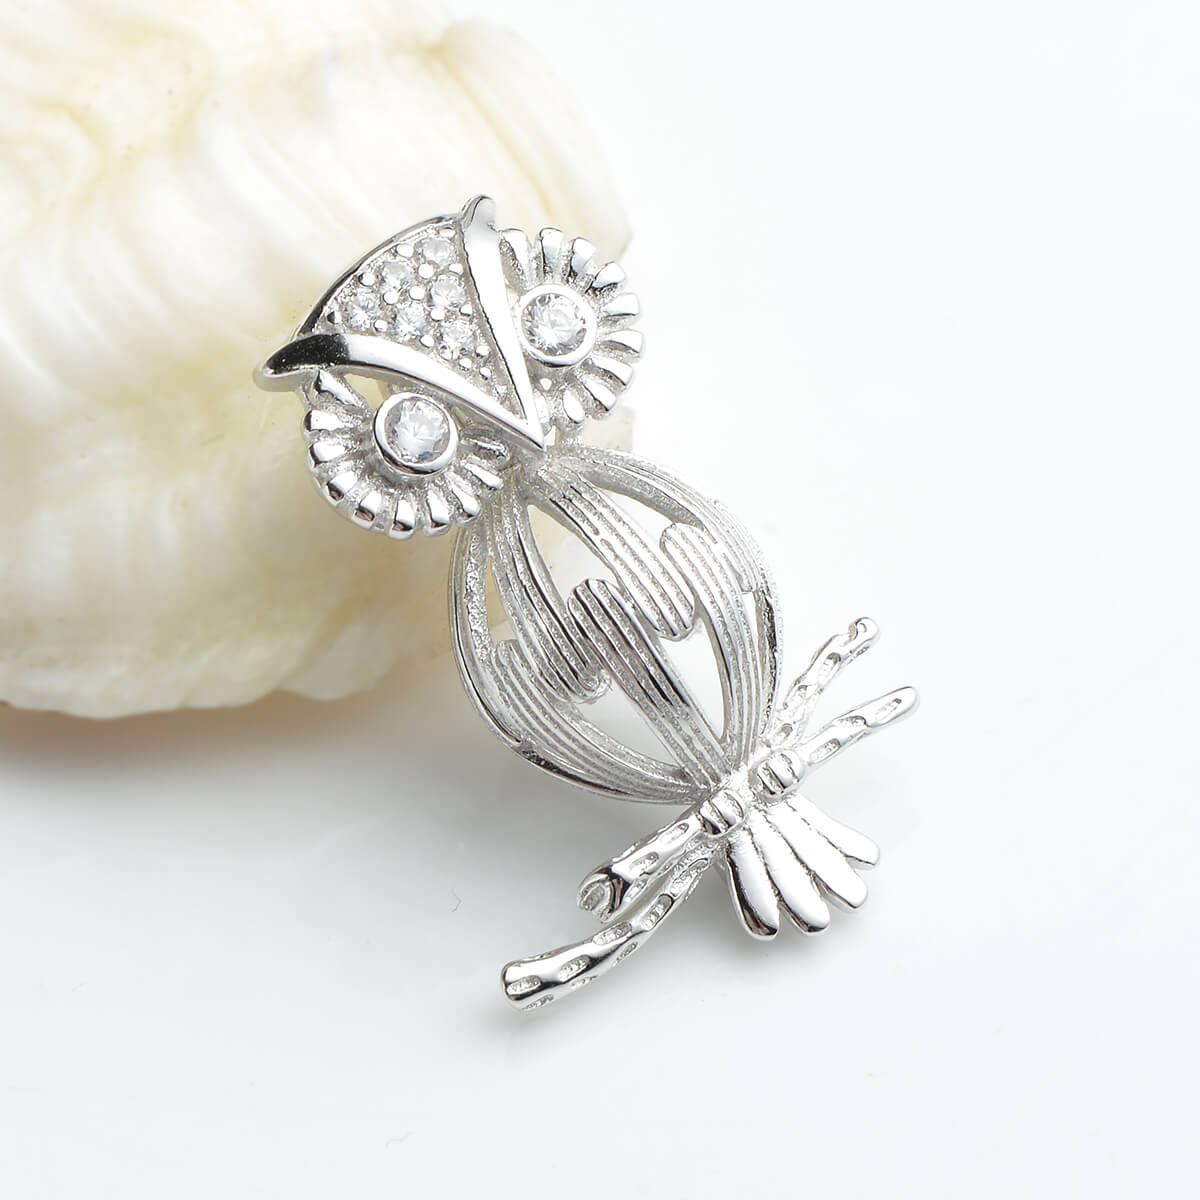 Owl Cage Love Wish Pearl 925 Sterling Silver Pendant Lockets